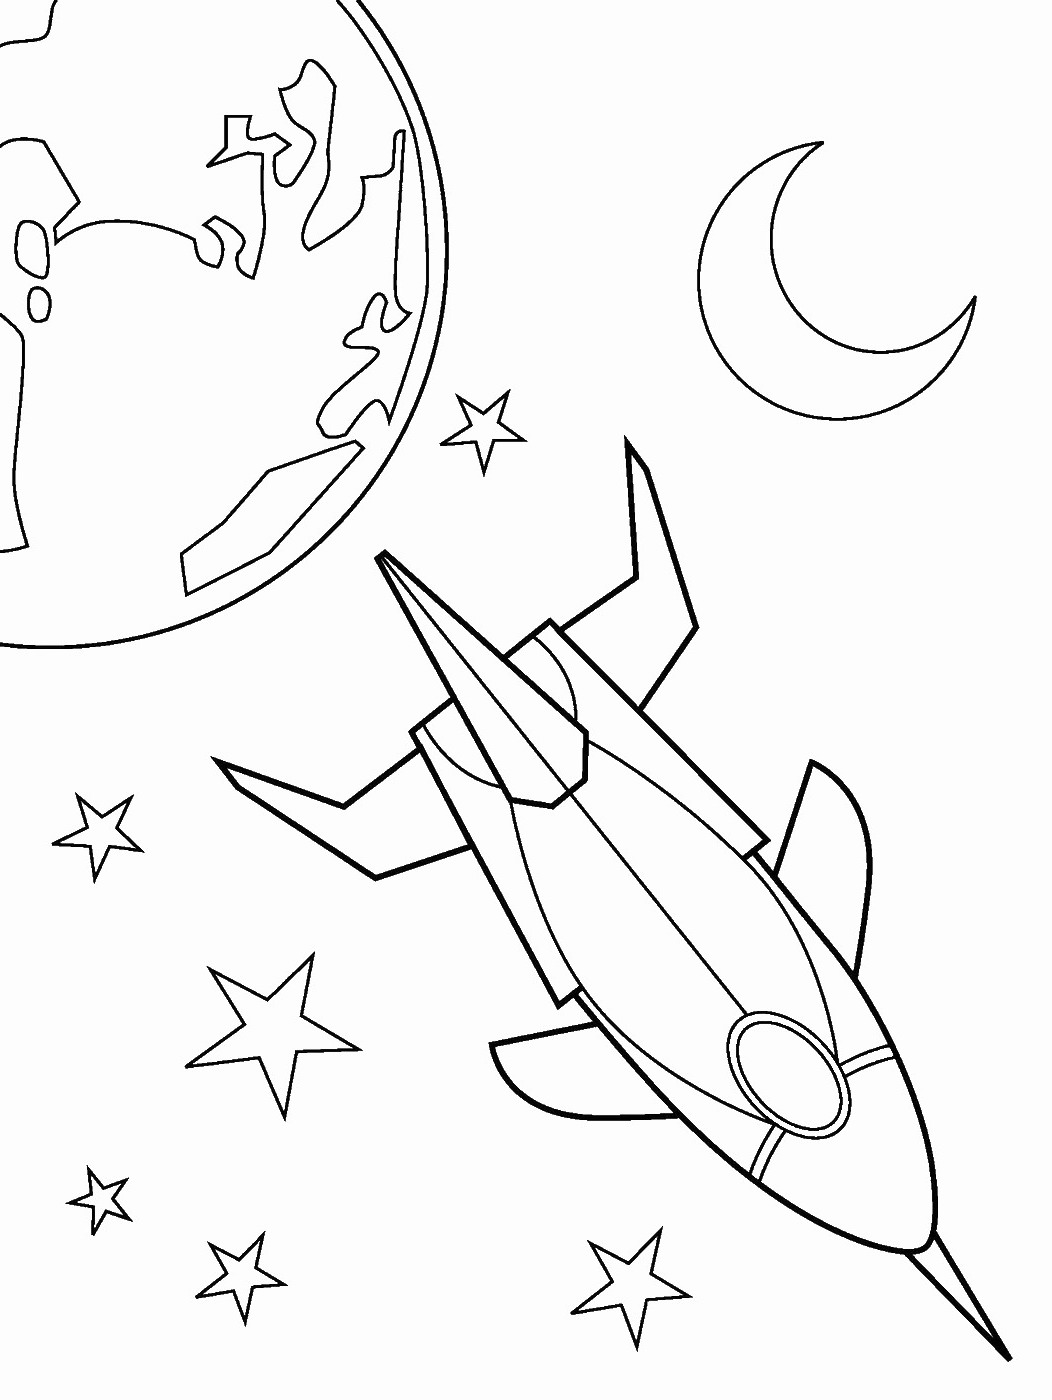 astronomy coloring pages get this space coloring pages adults printable gsa64 coloring astronomy pages